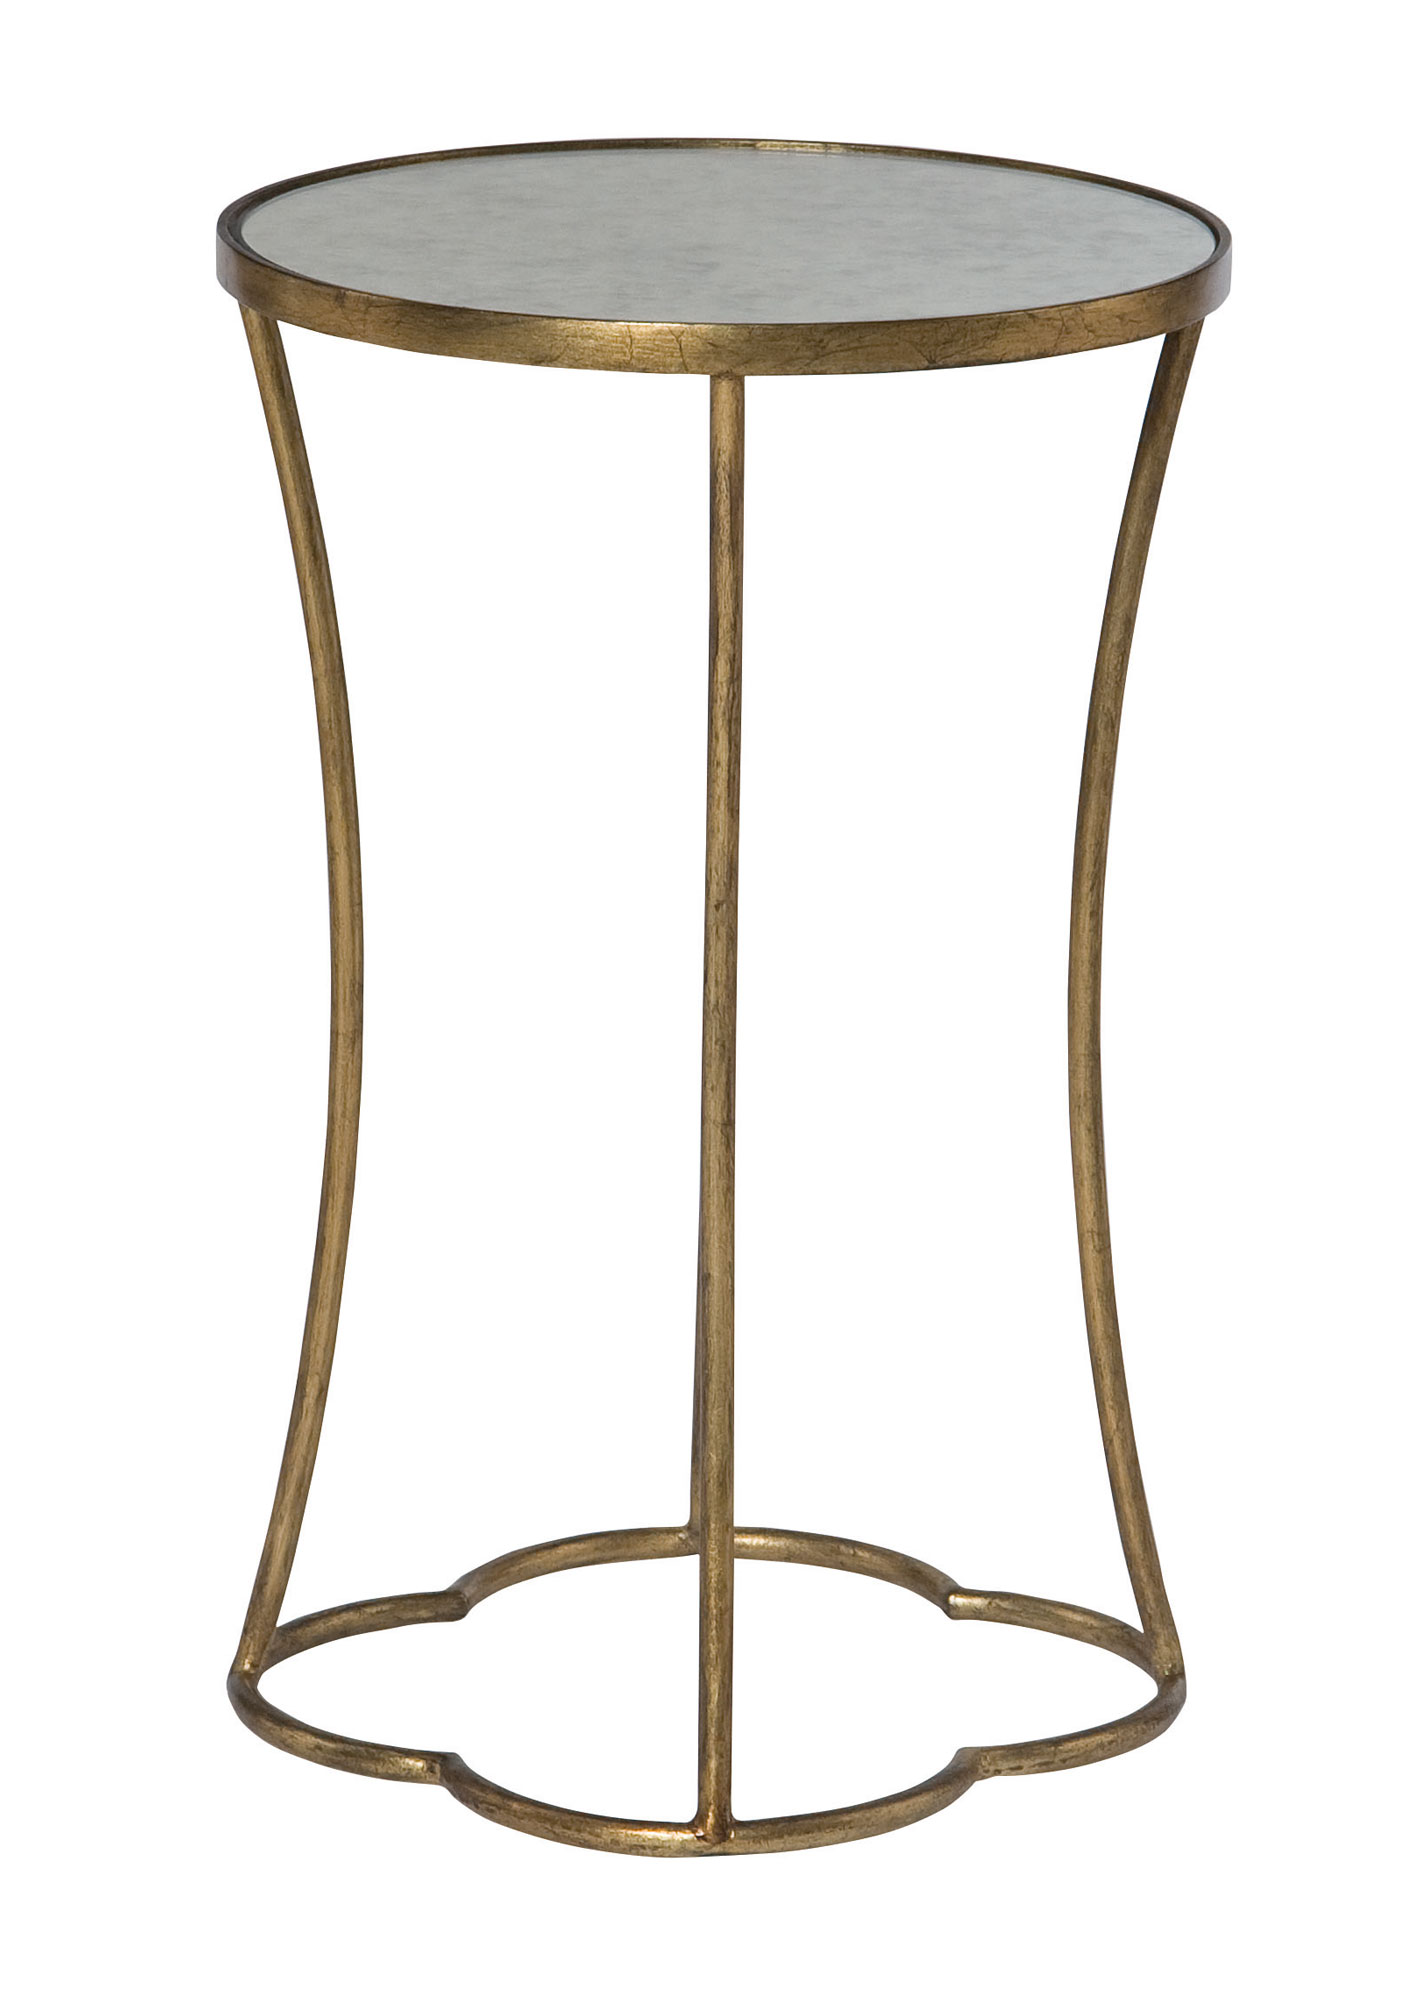 round accent table bernhardt side tables wood block end console with storage adjustable furniture legs glass top wine rack target small foyer student desks for home white lamp